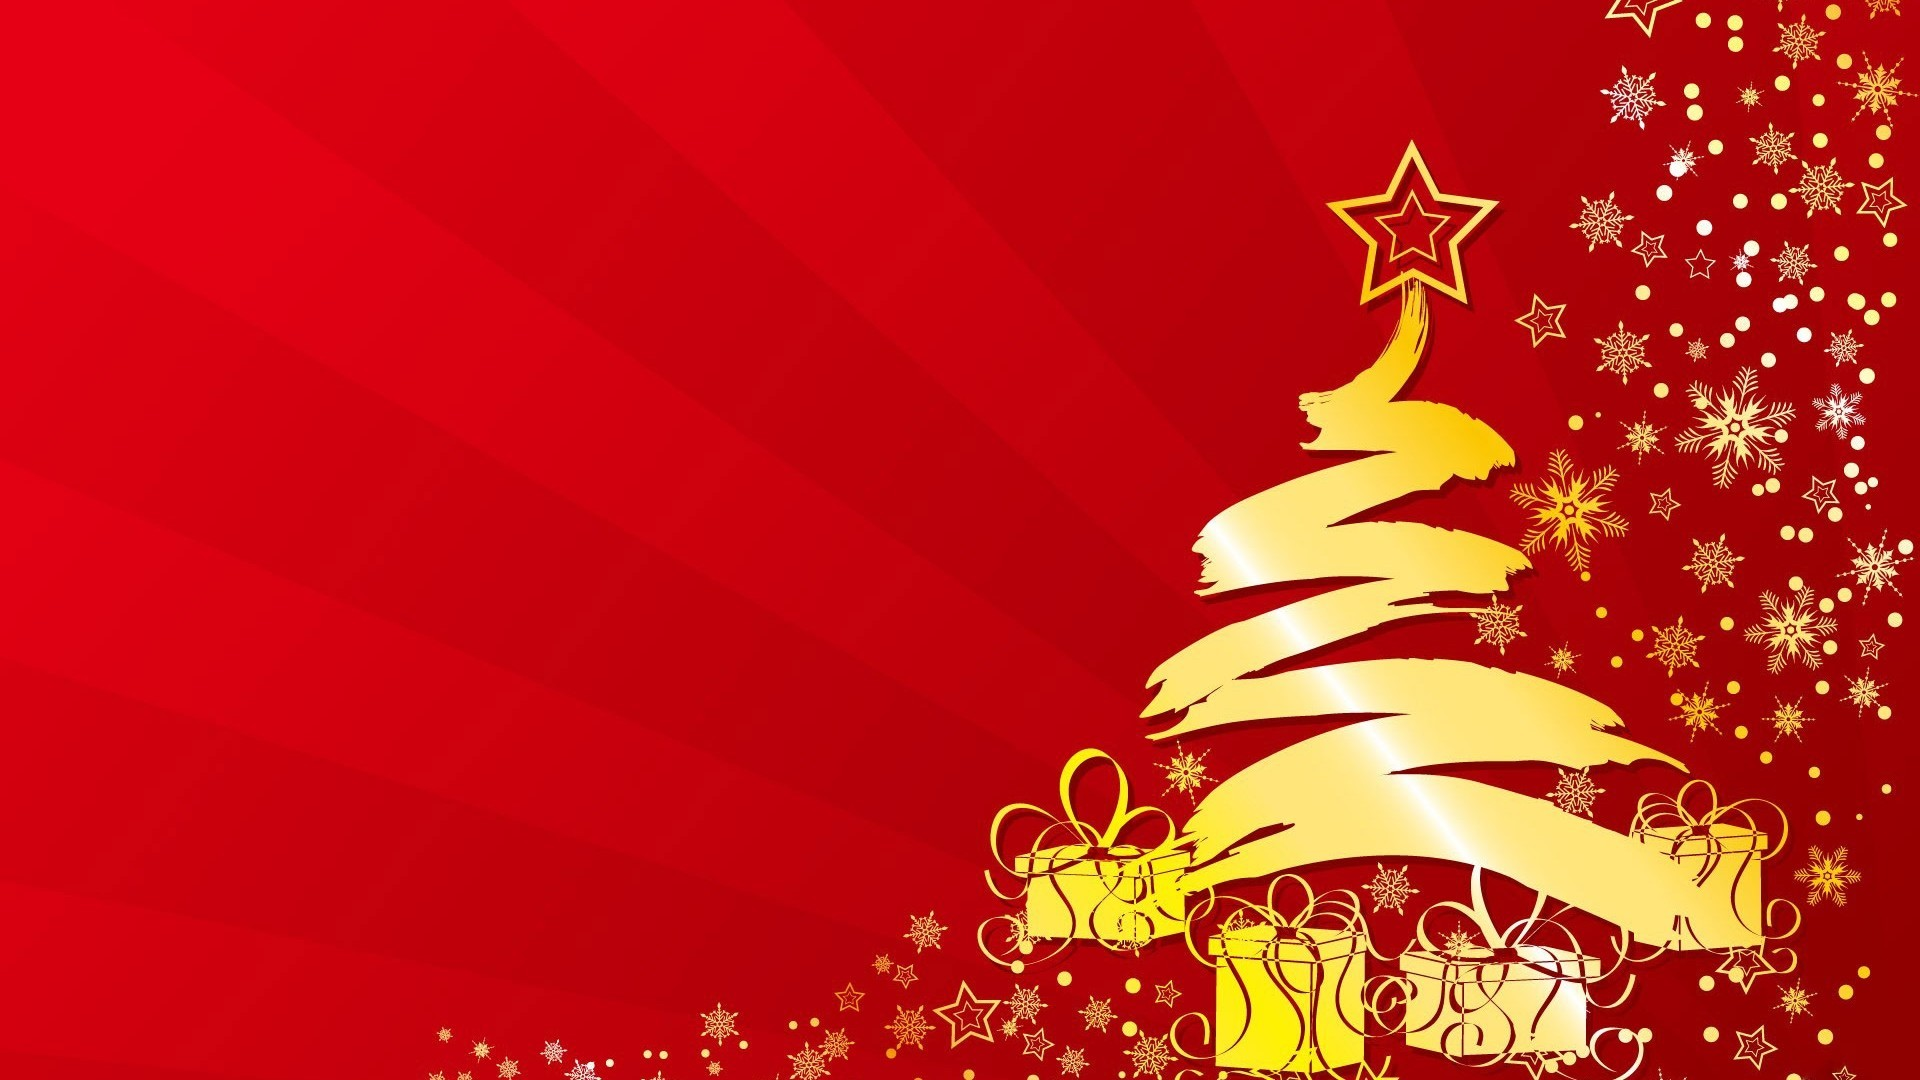 xmas wallpapers 66 images